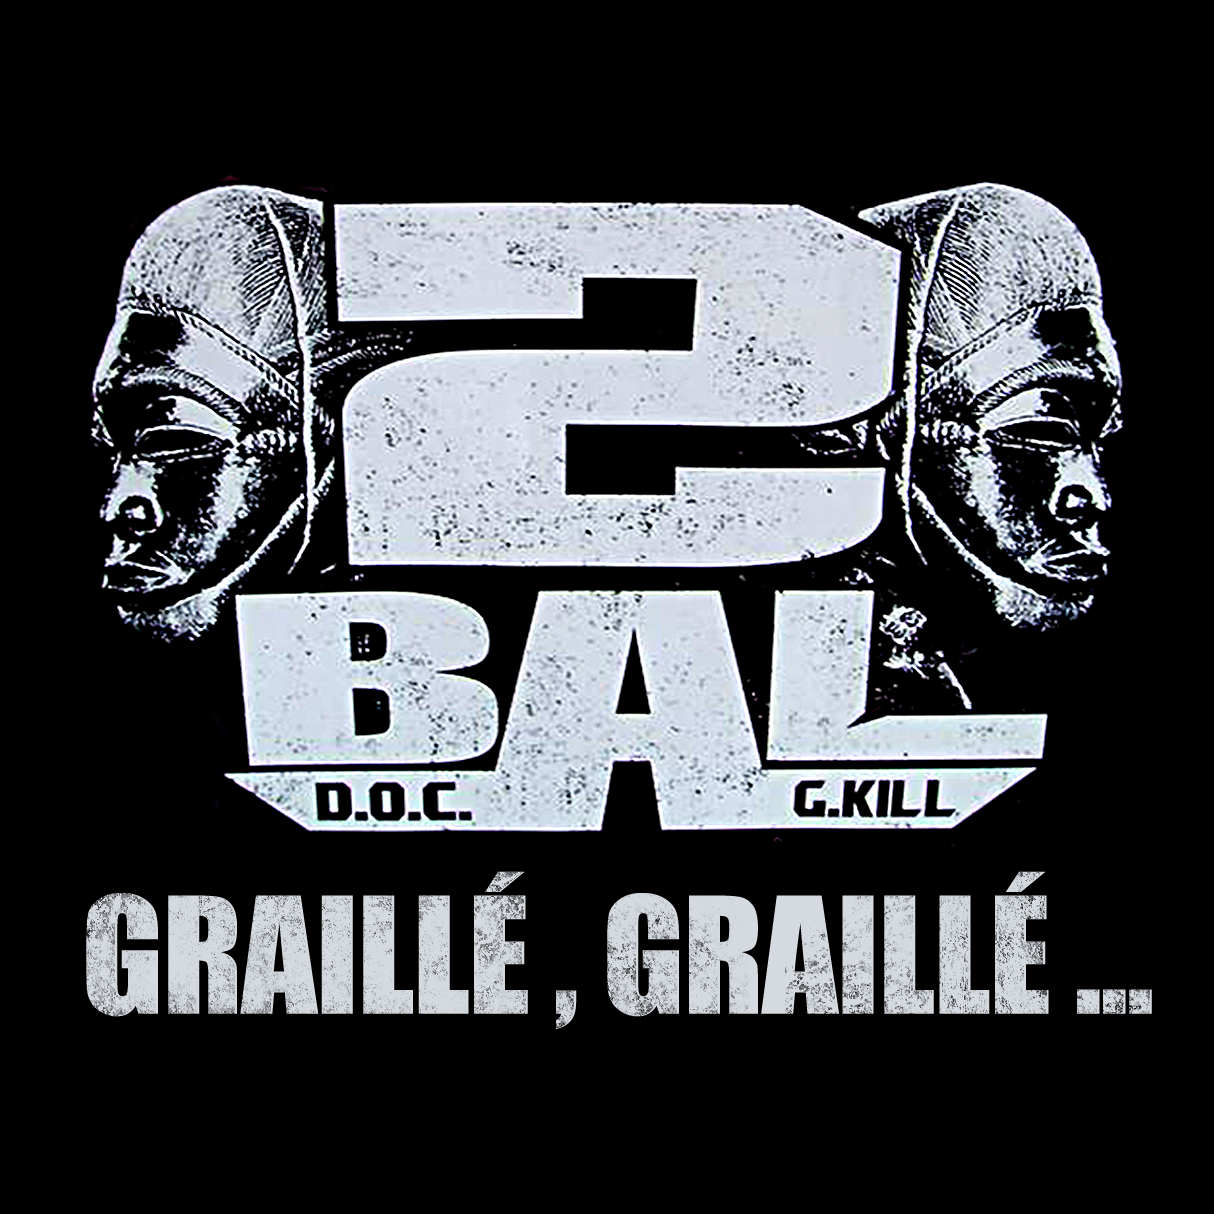 2bal-graille